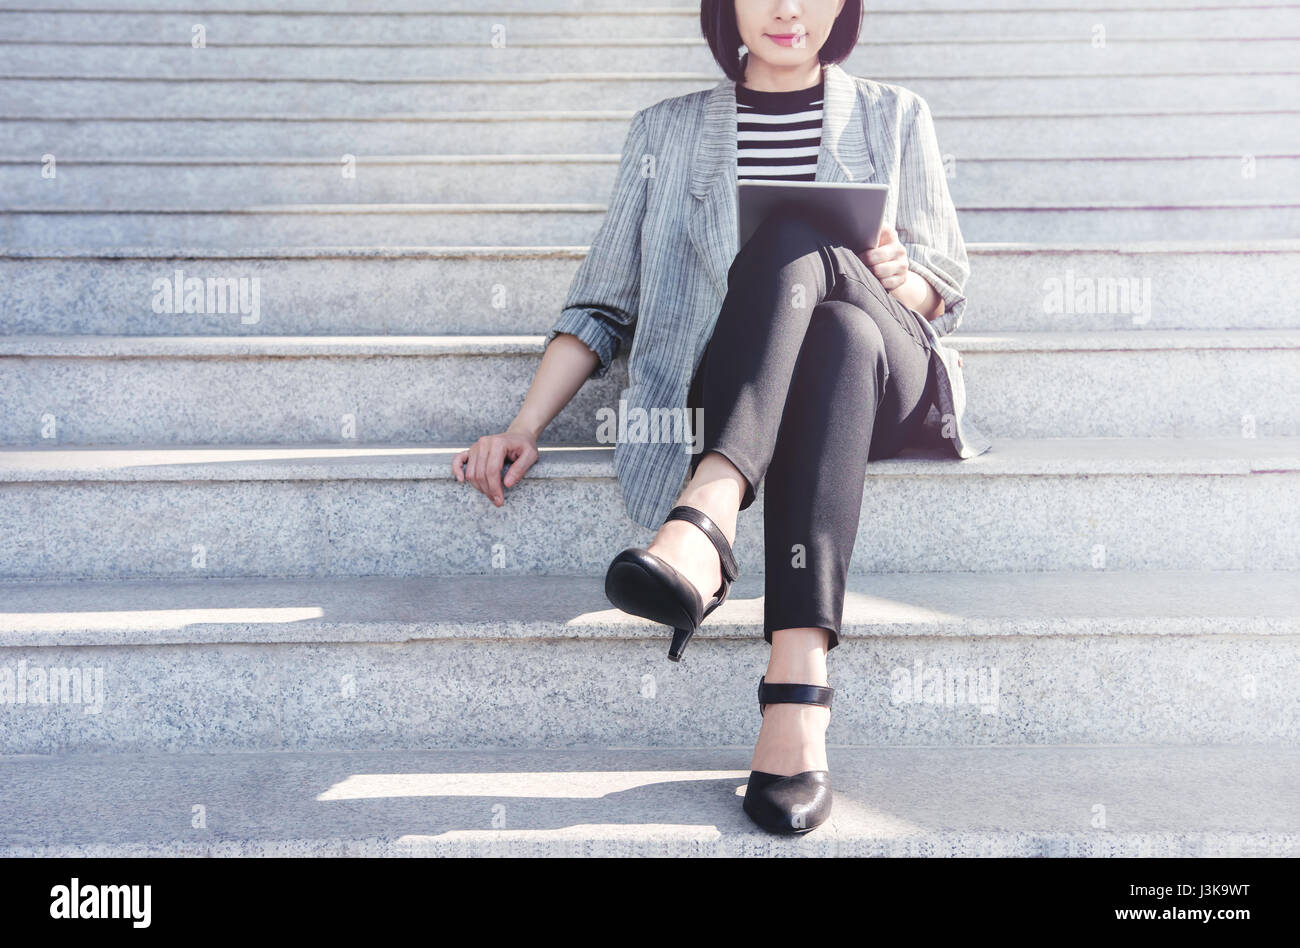 Business working woman sit and smile during using digital tablet at outdoor stair, front view, Social communicate - Stock Image